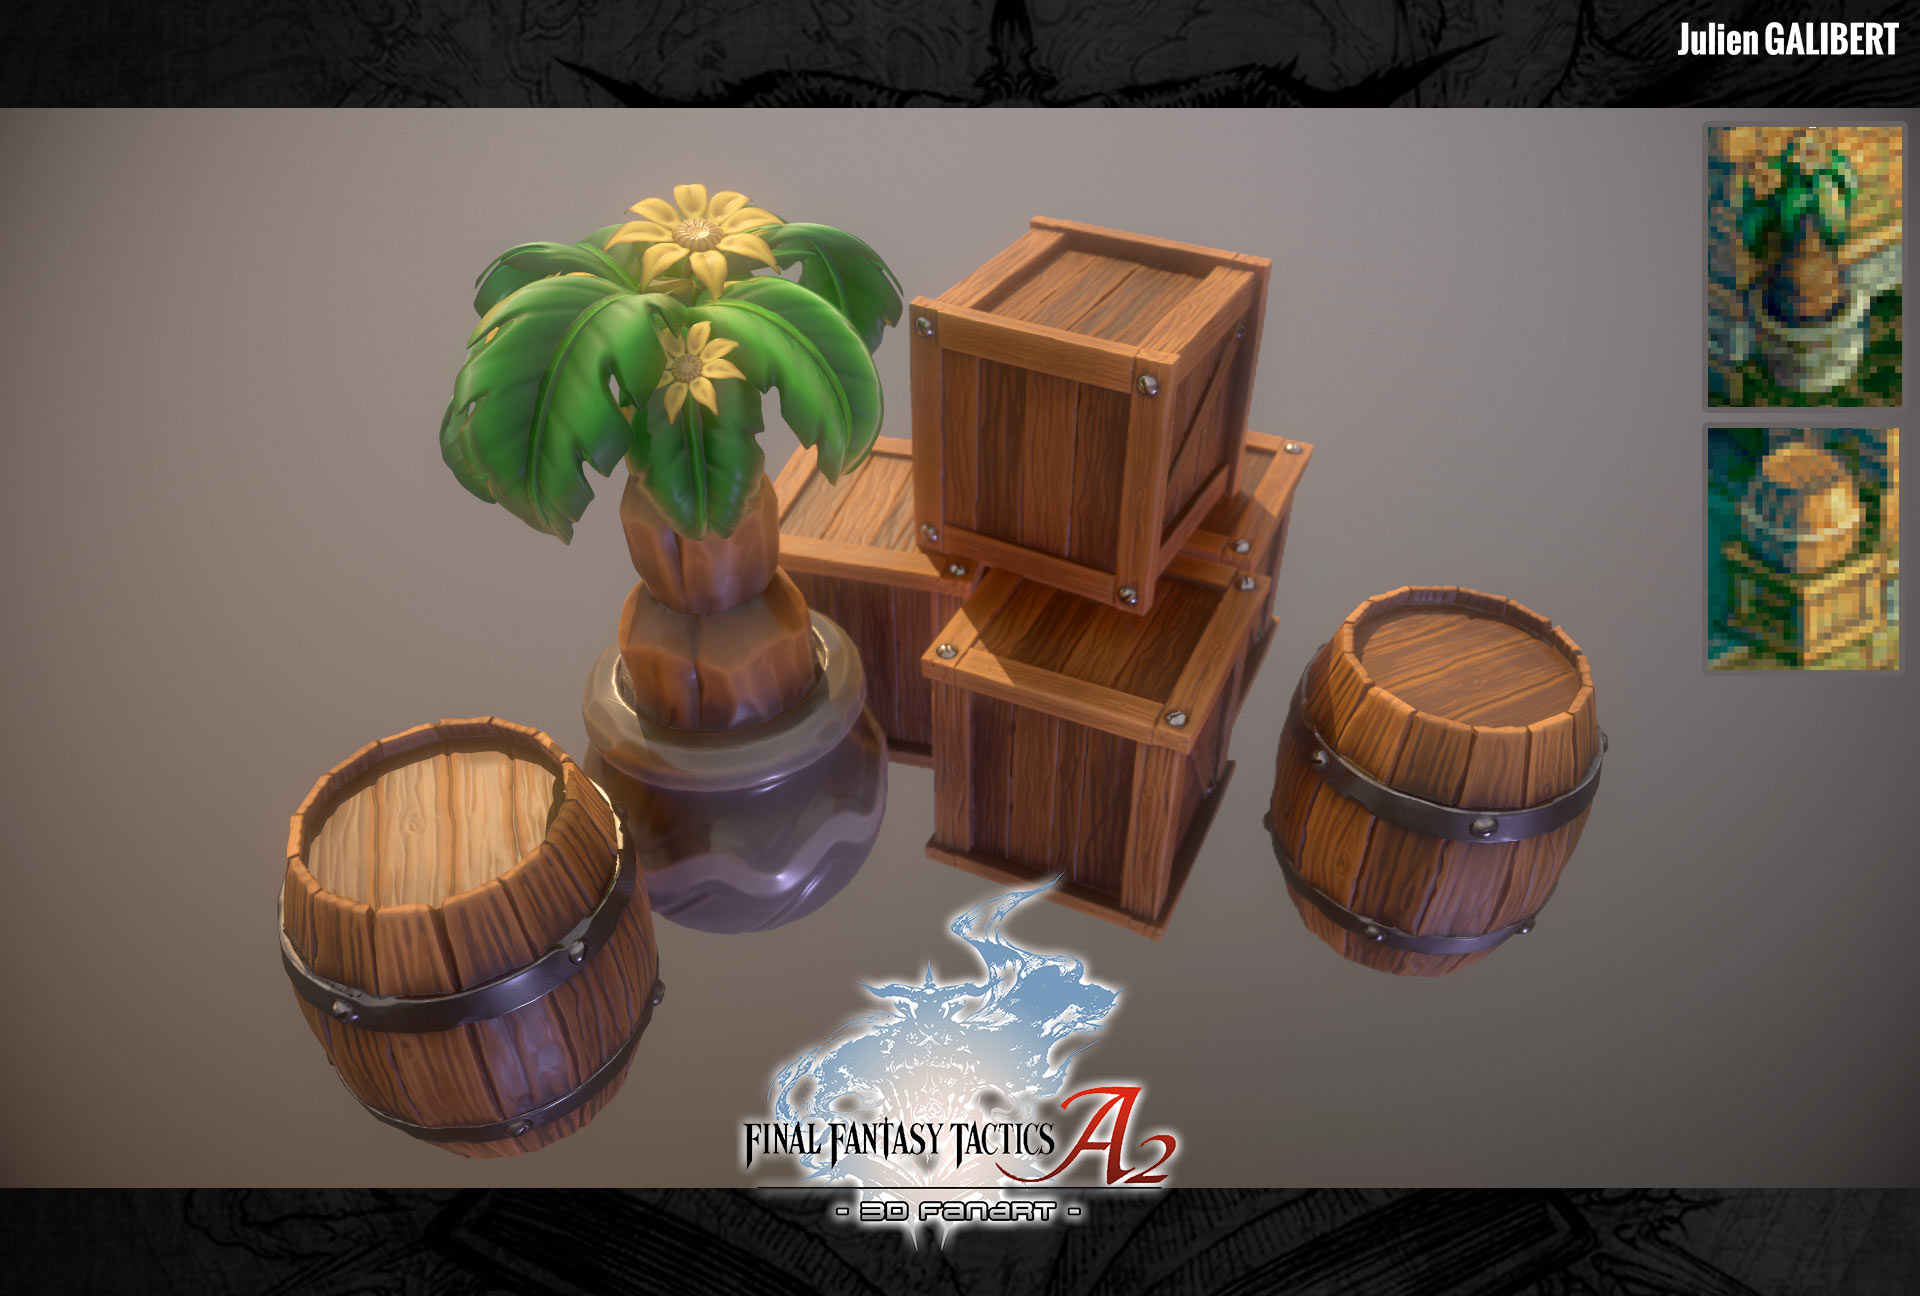 Final Fantasy Tactics Advance 2 3D Fanart screen